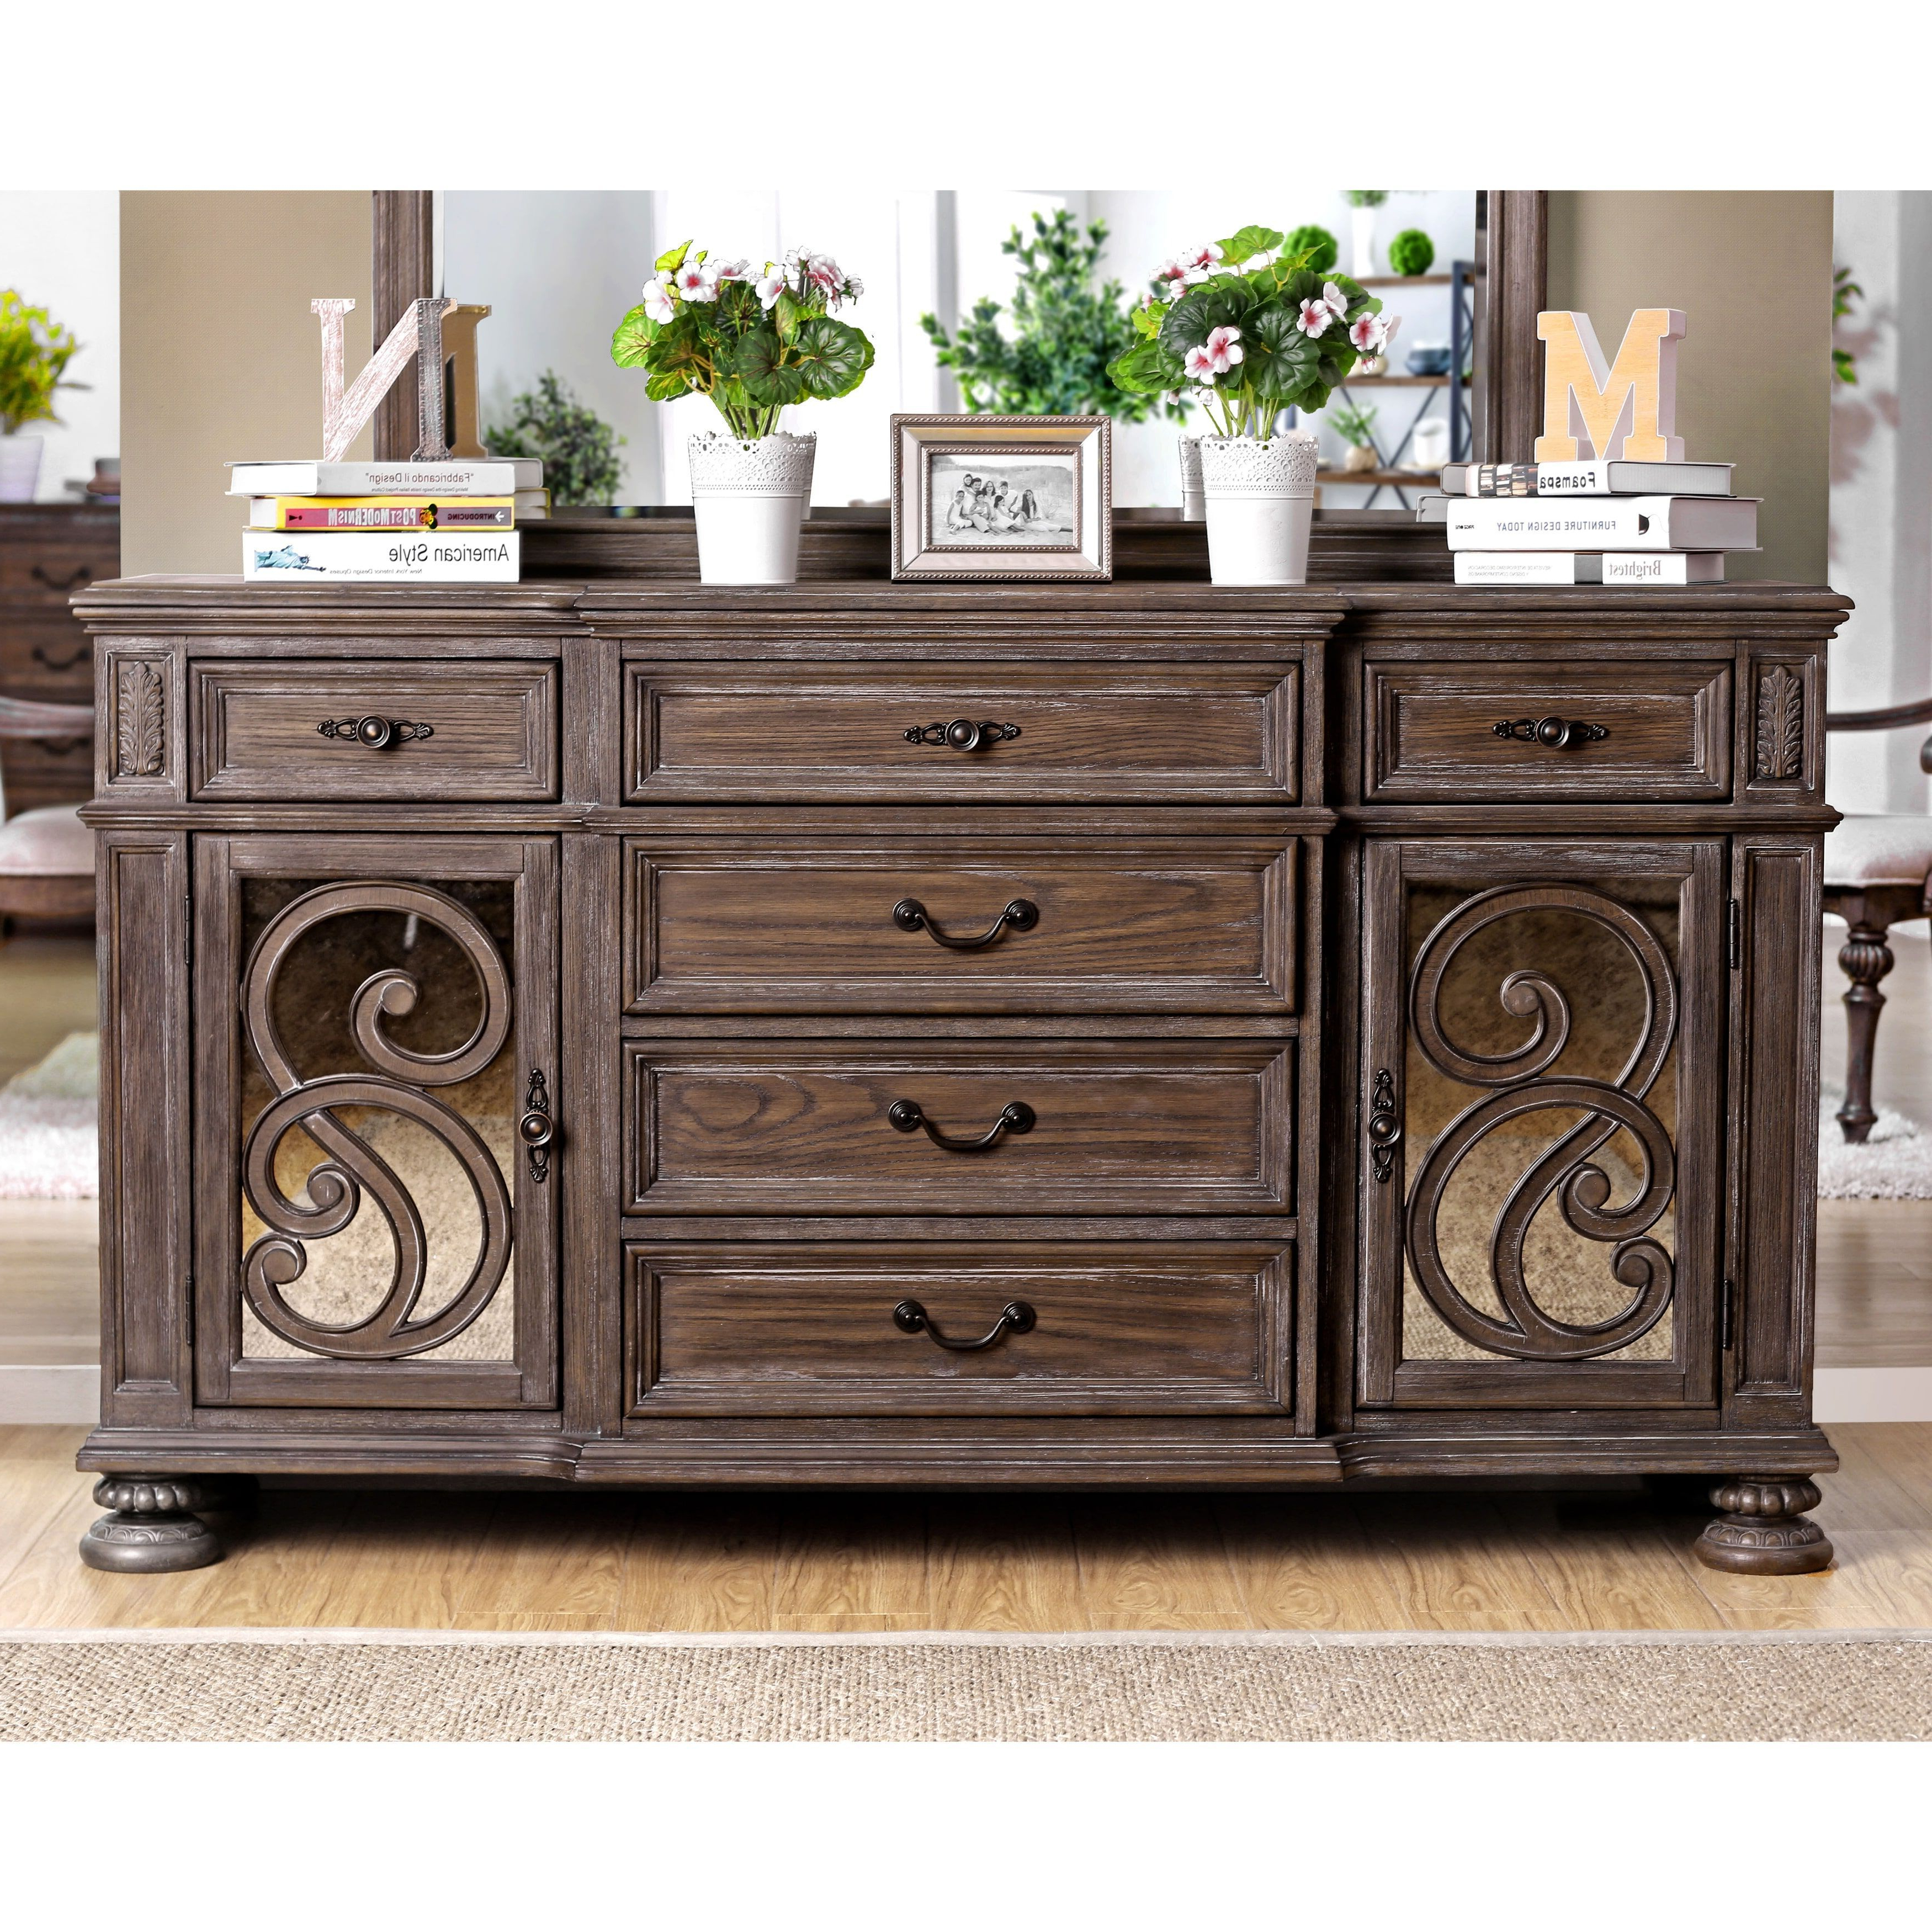 Furniture Of America Dianne Scrolled Mirrored Multi Storage Pertaining To Emmaline Sideboards (View 9 of 20)